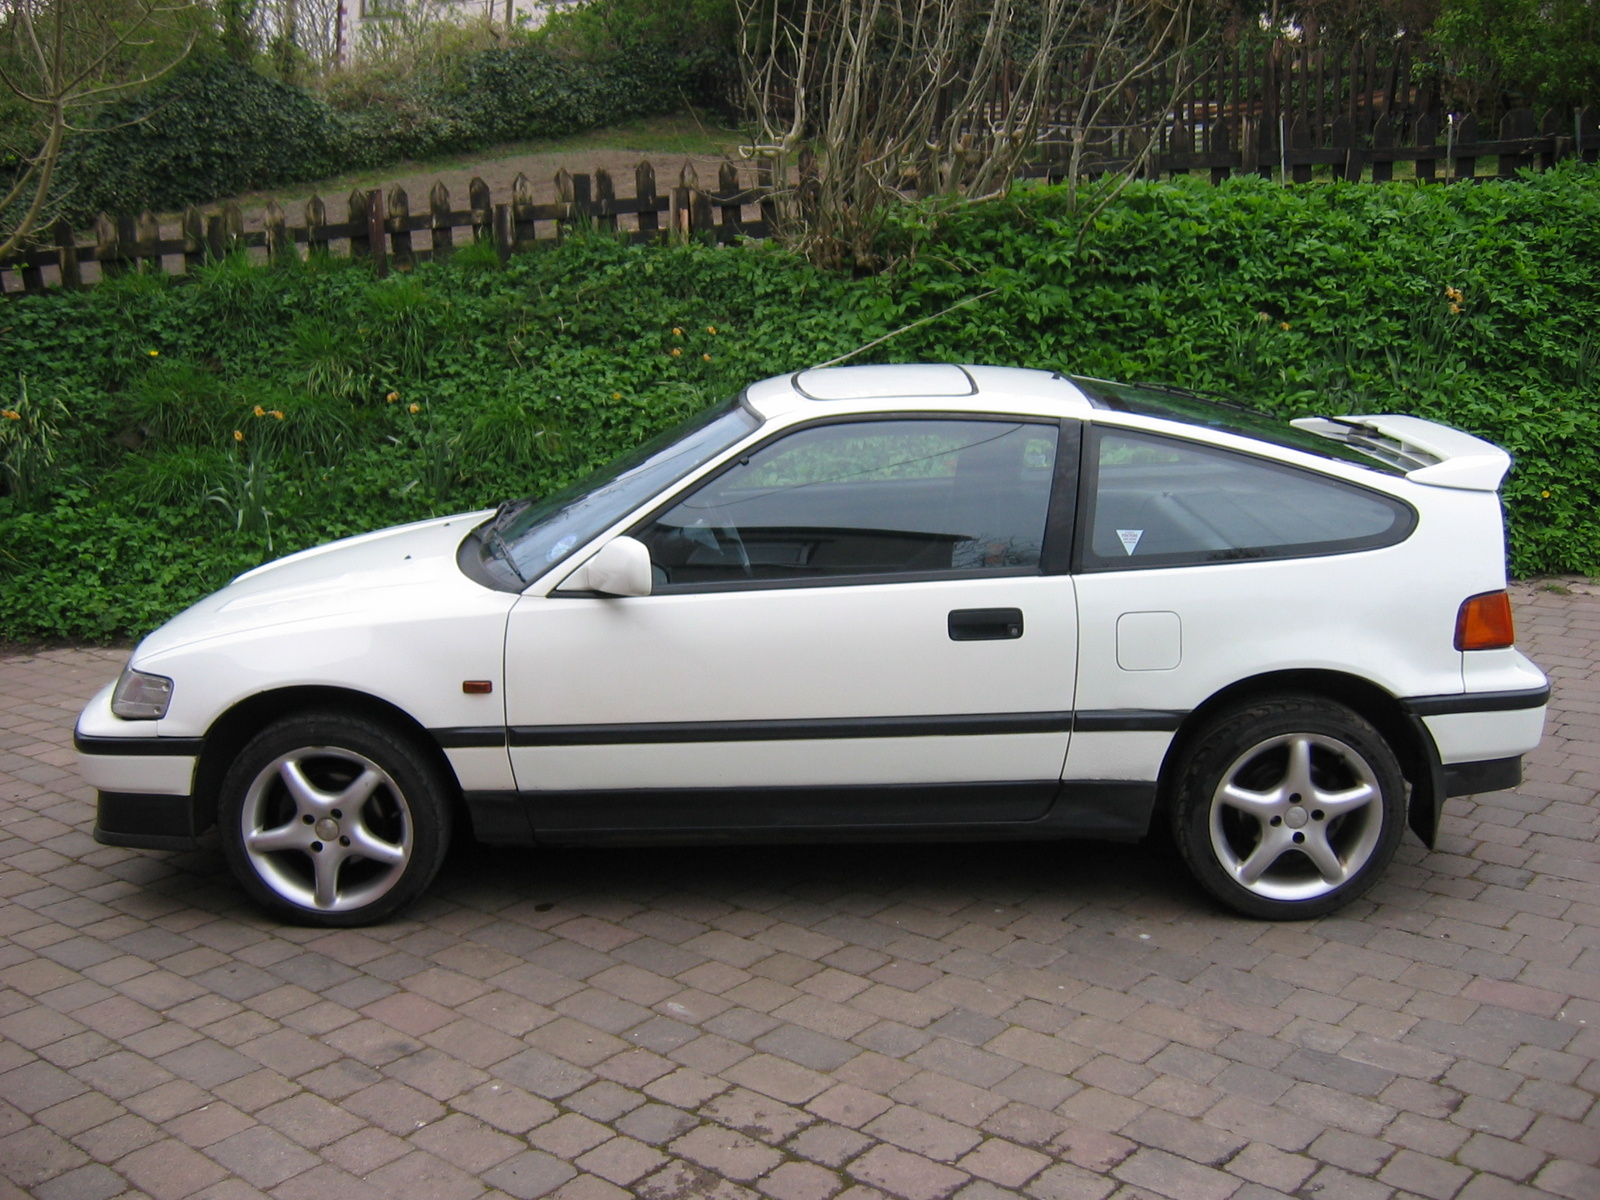 1990 Honda Civic CRX CRX picture